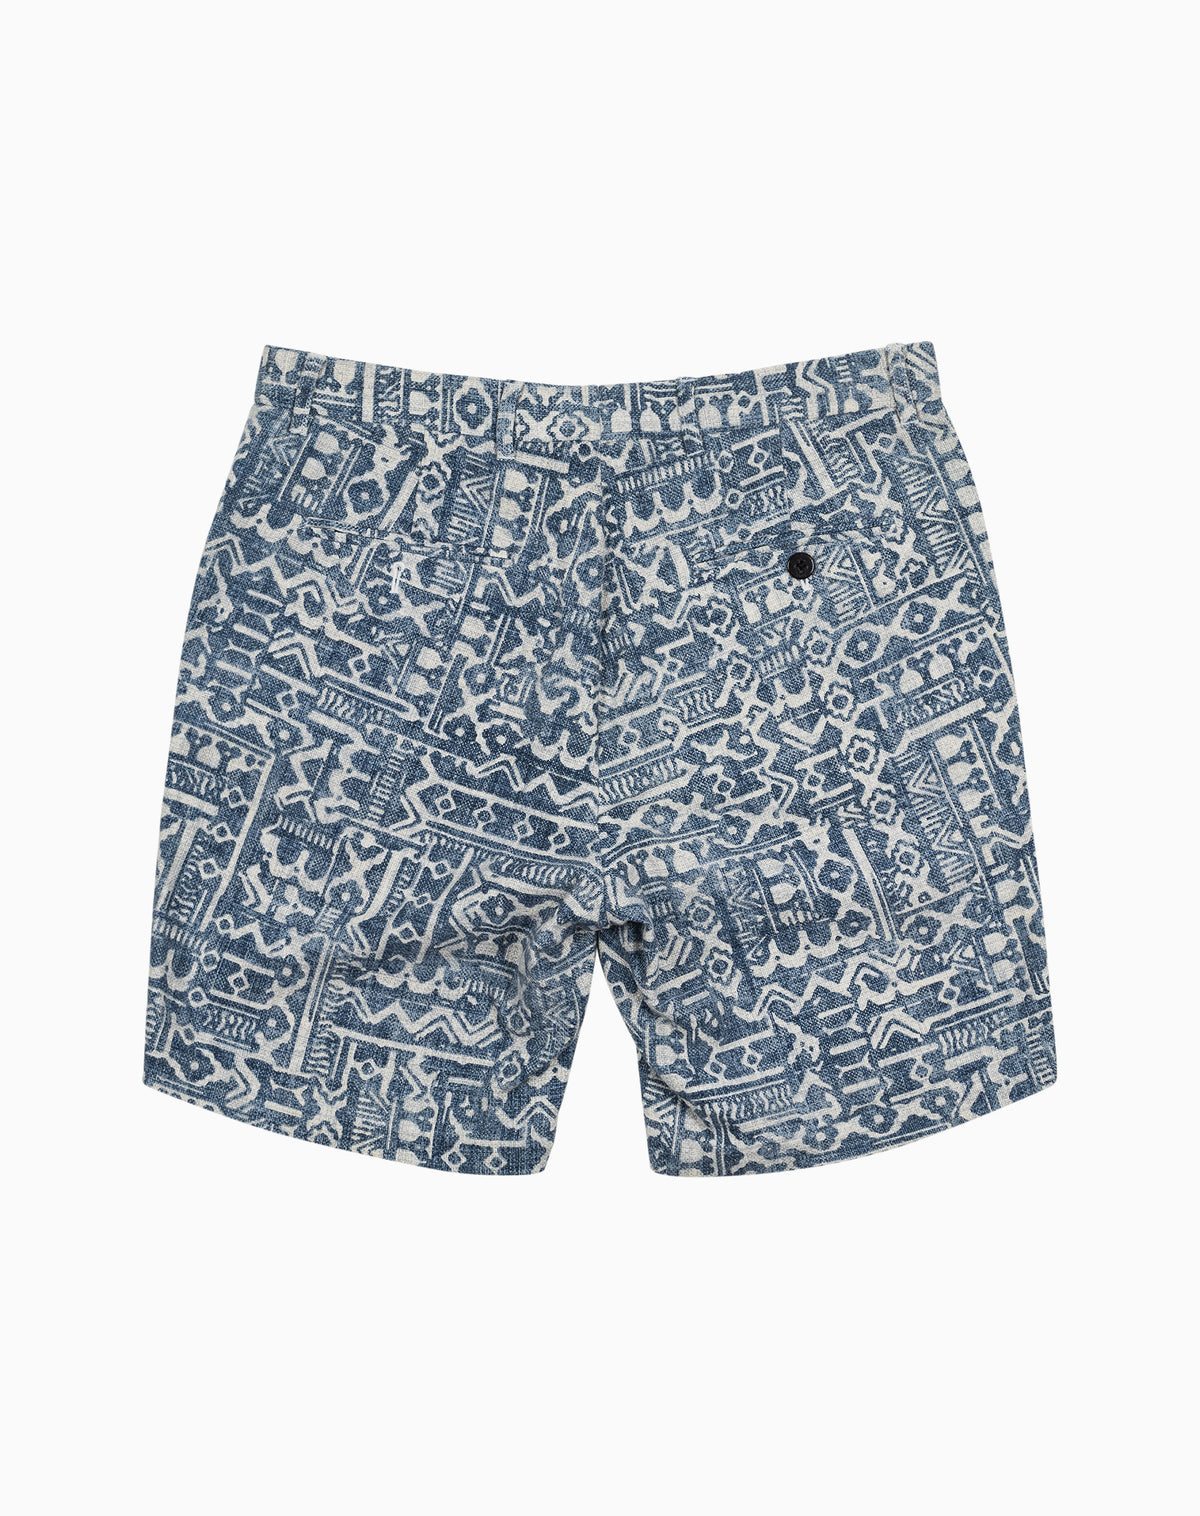 Printed Short in Mud Cloth